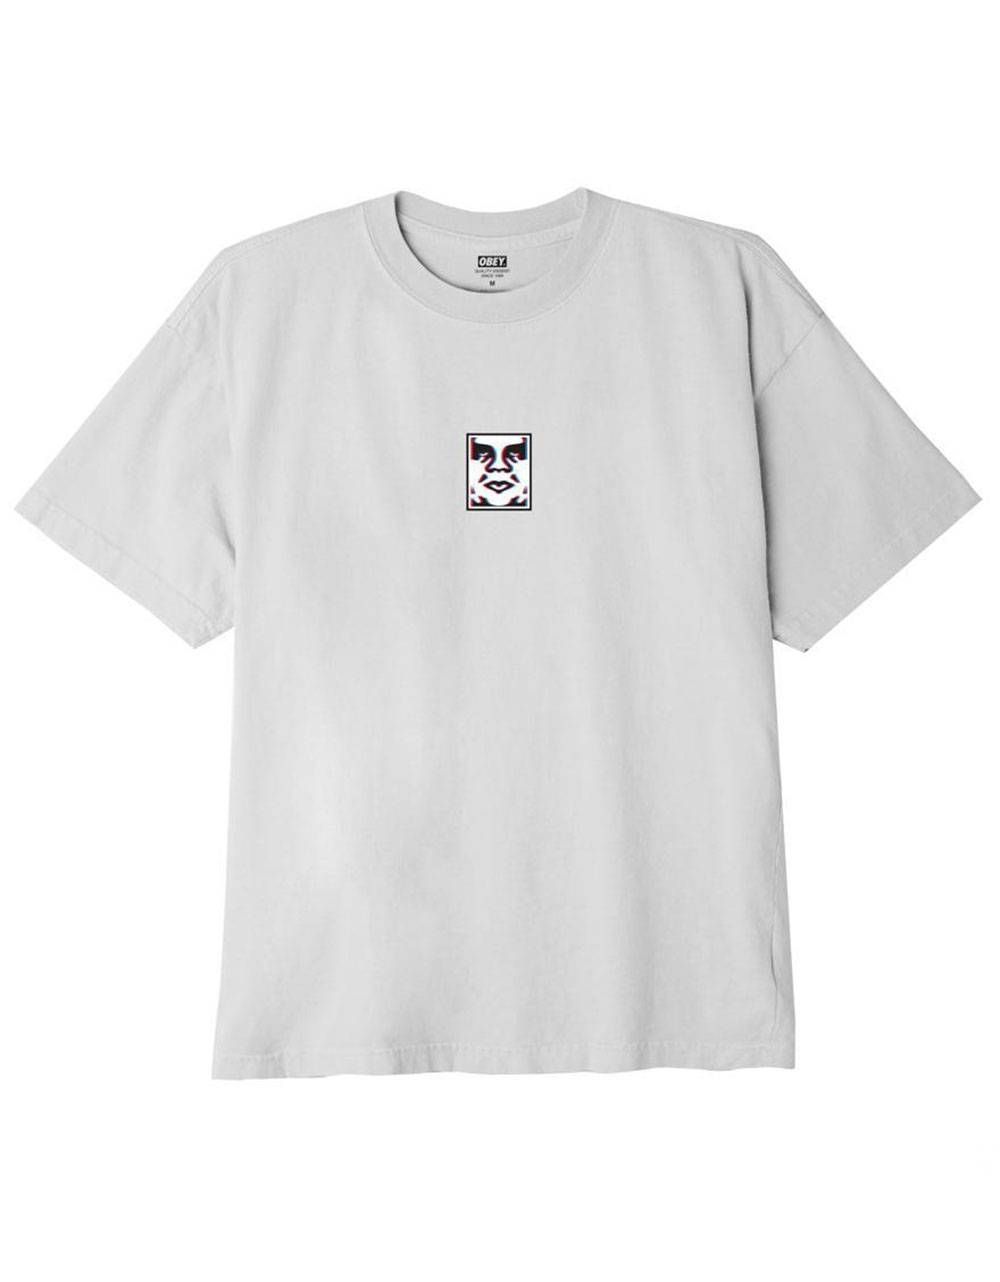 Obey double vision classic t-shirt - white obey T-shirt 45,00€